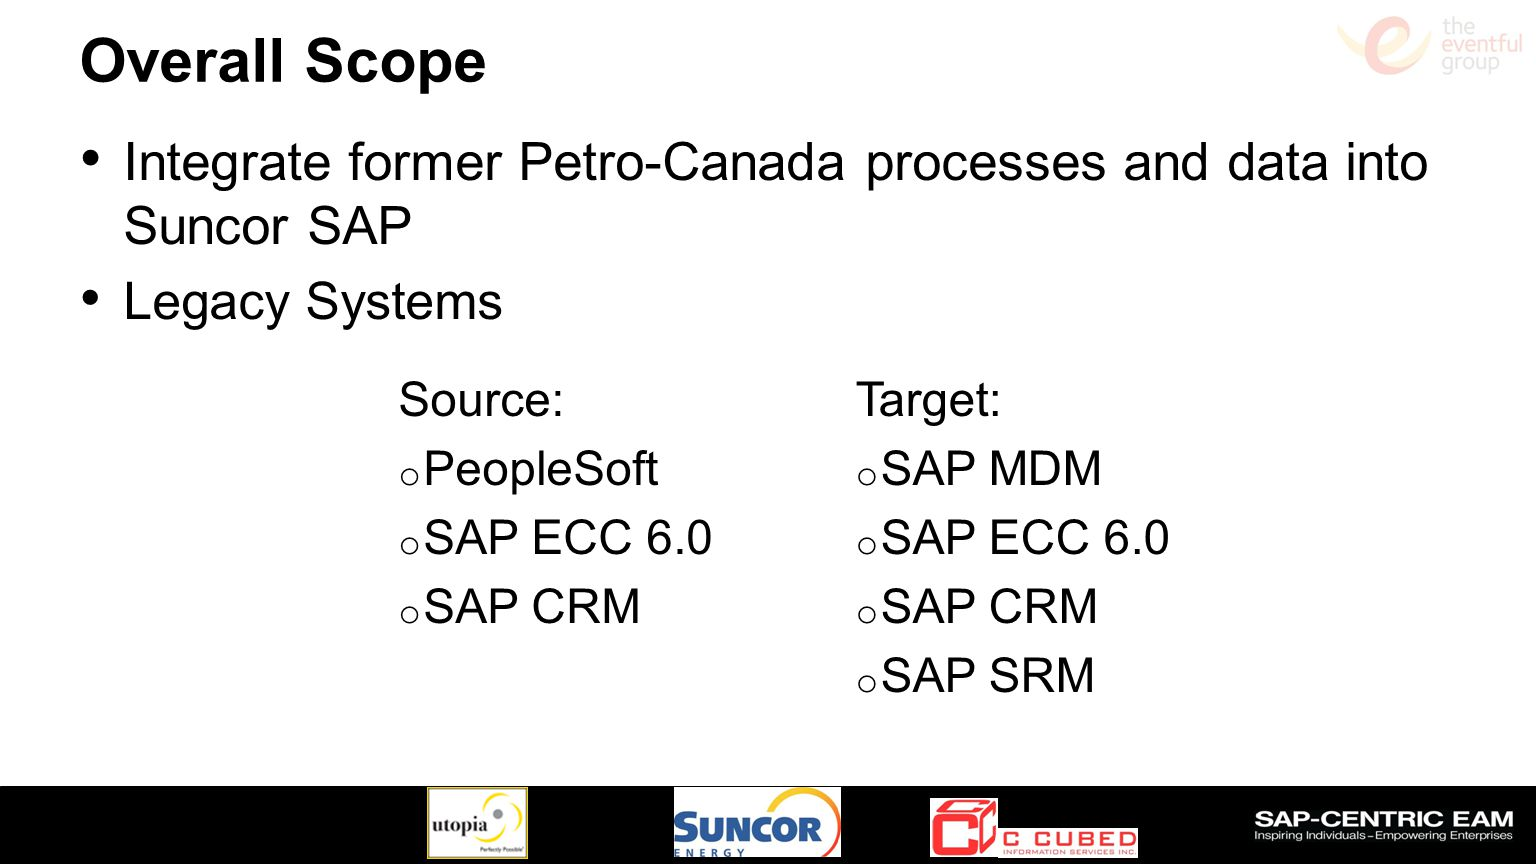 Overall Scope Integrate former Petro-Canada processes and data into Suncor SAP. Legacy Systems. Source: